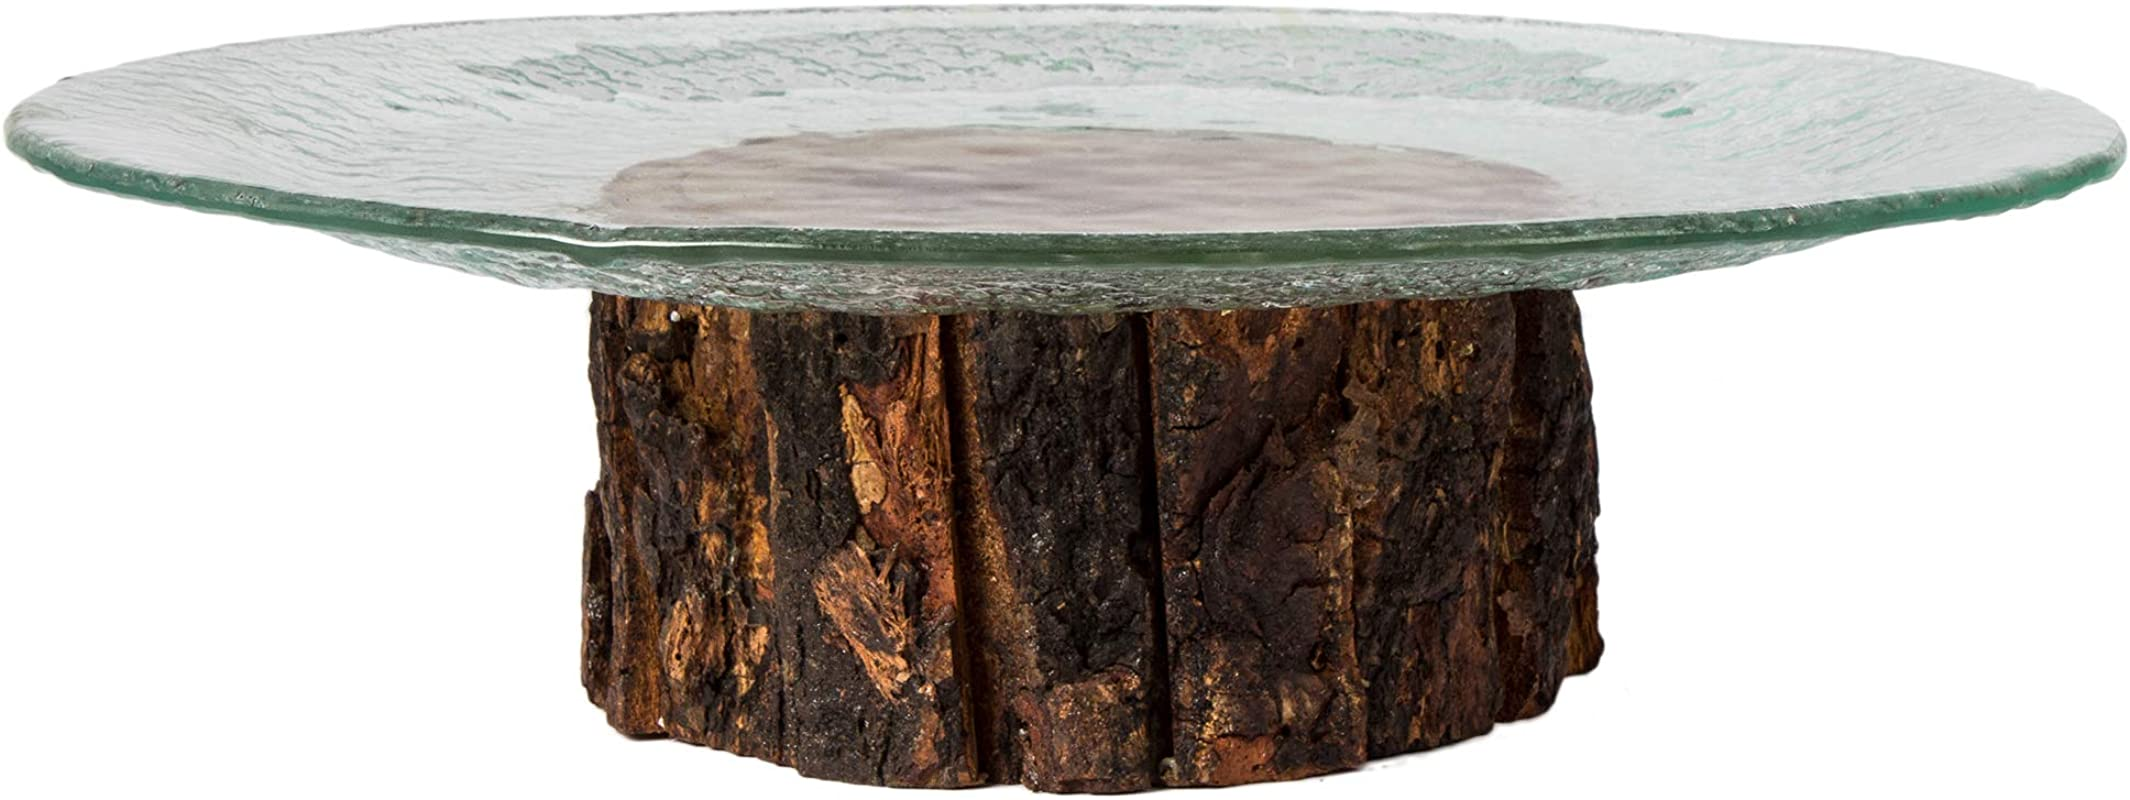 Red Fig Home Tree Trunk Serving Tray Platter Cake Stand Slumped Round Glass Display Plate On Rustic Wood Base Decorative Holder For Dessert Cupcakes Appetizers And Hors D Oeuvres